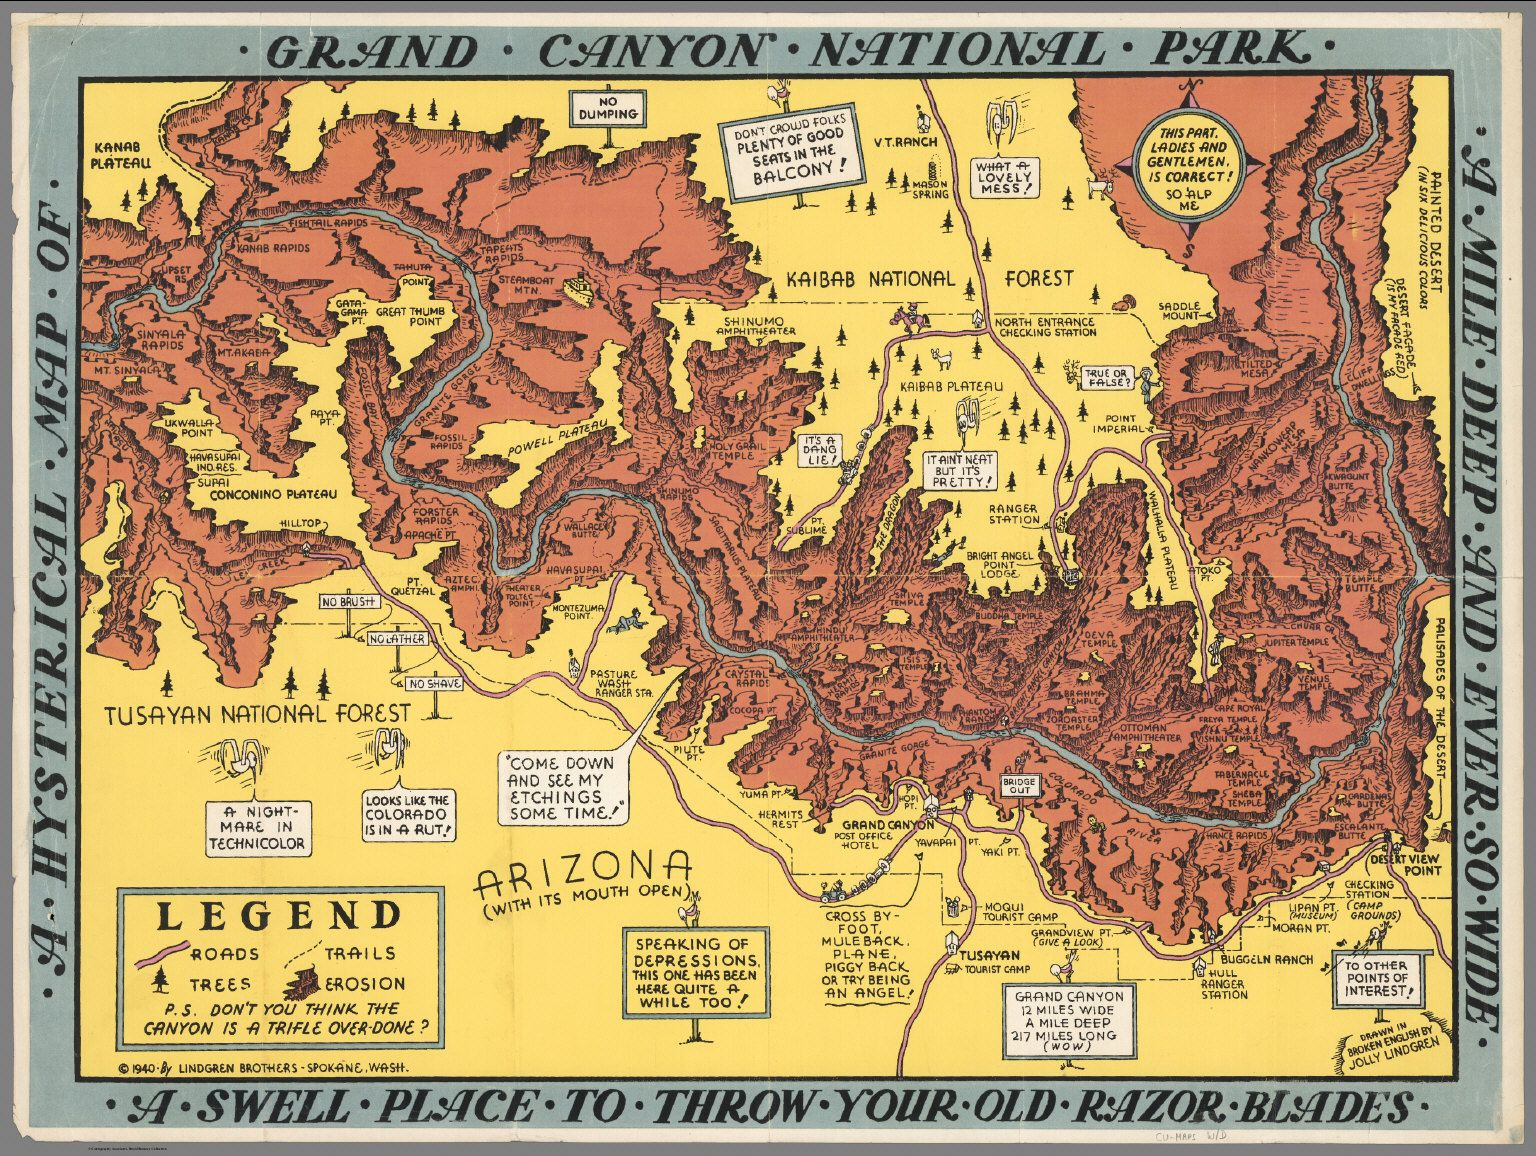 Vintage Infodesign Pinterest Grand Canyon Park And - Grand canyon tourist map